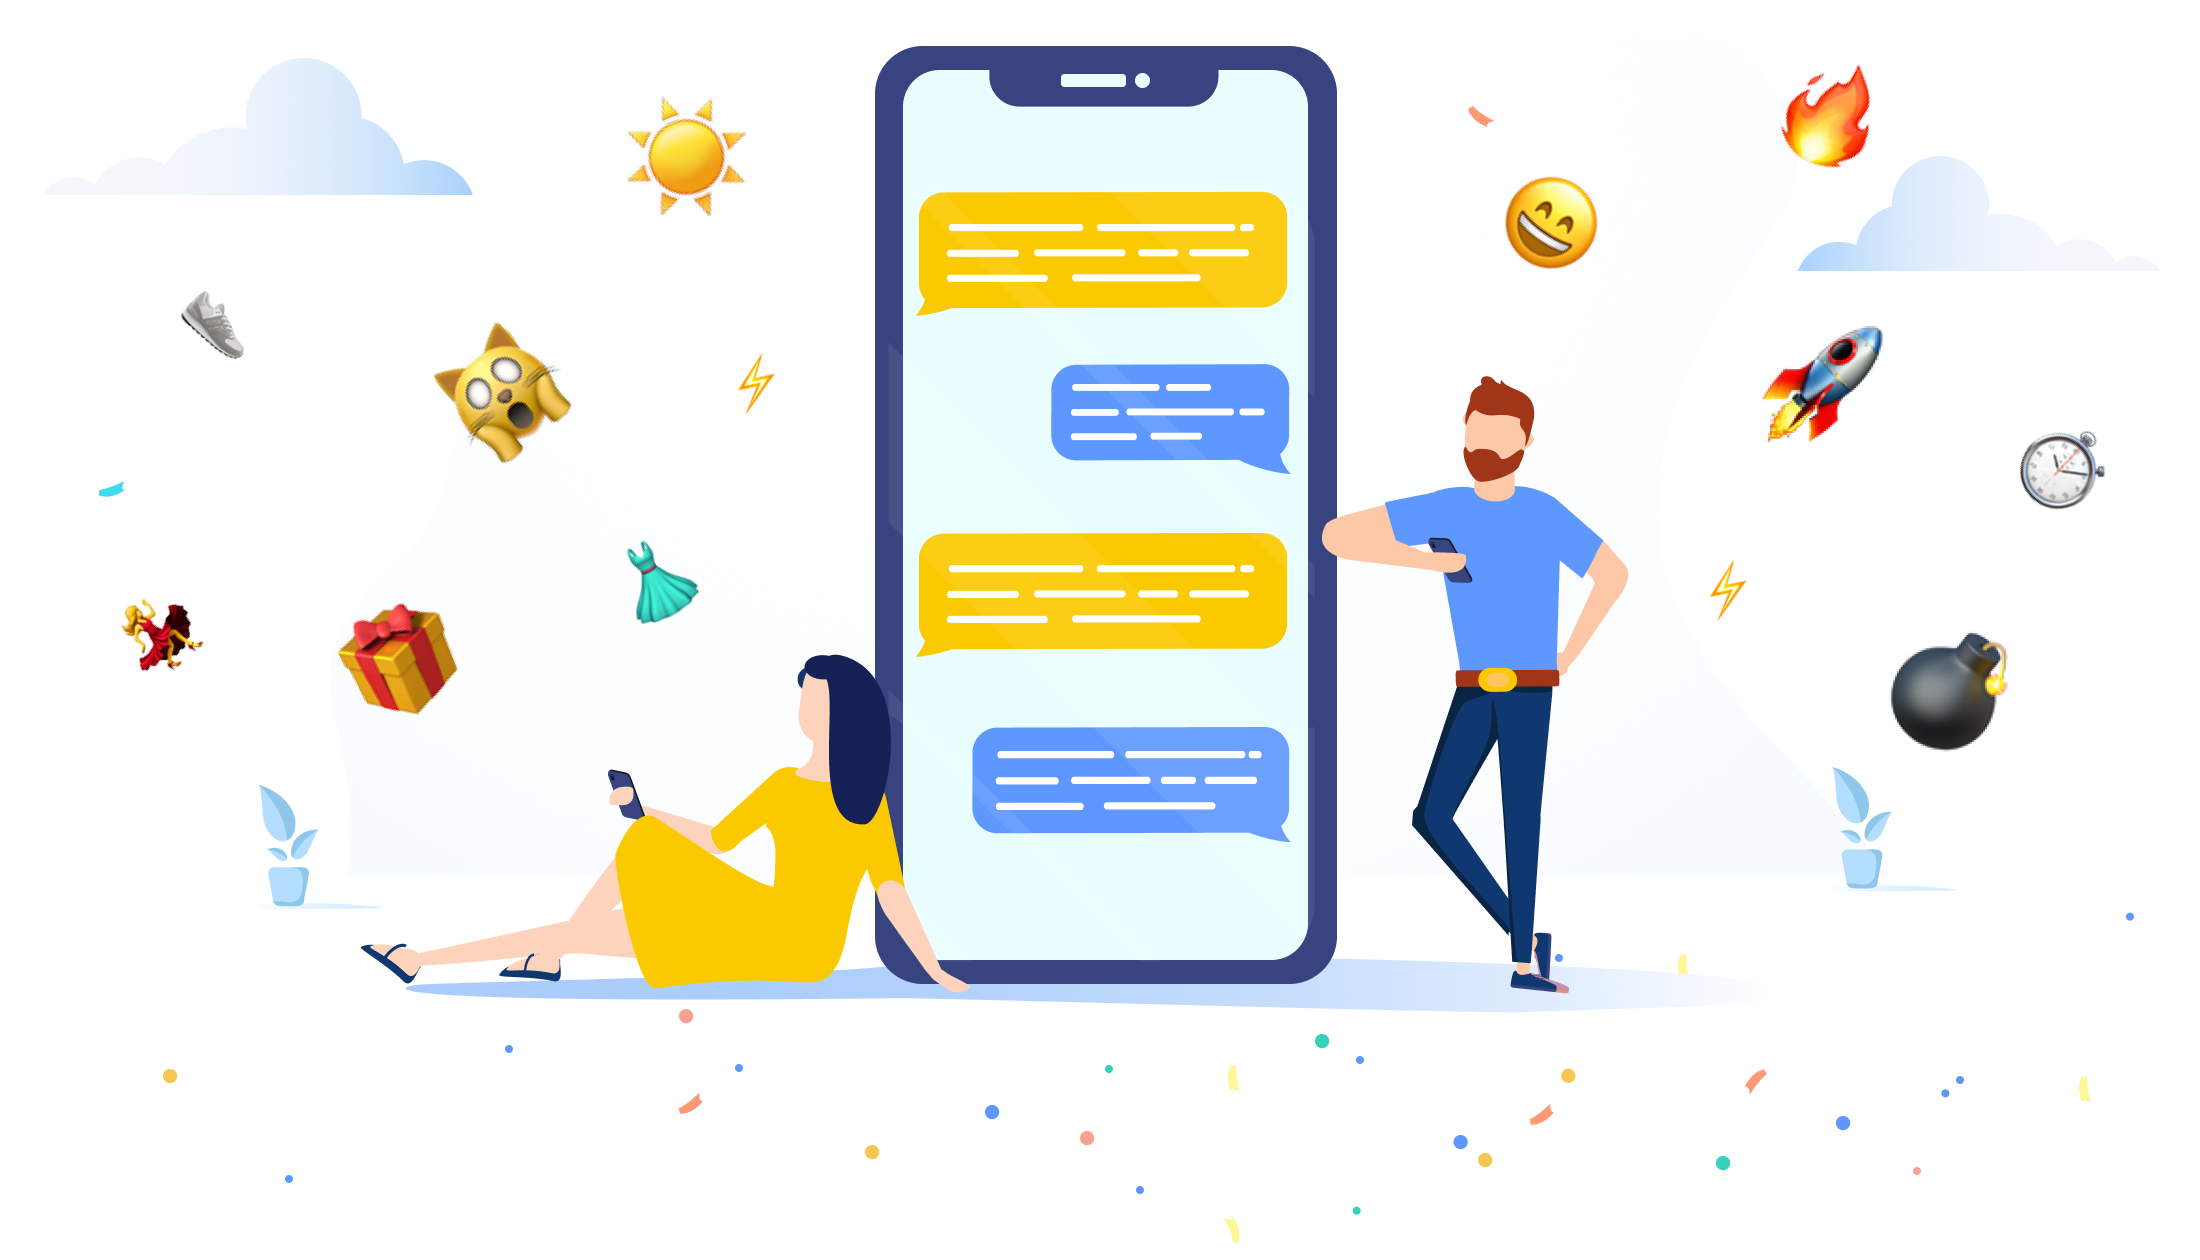 Emojis increase push notifications CTR by over 100%